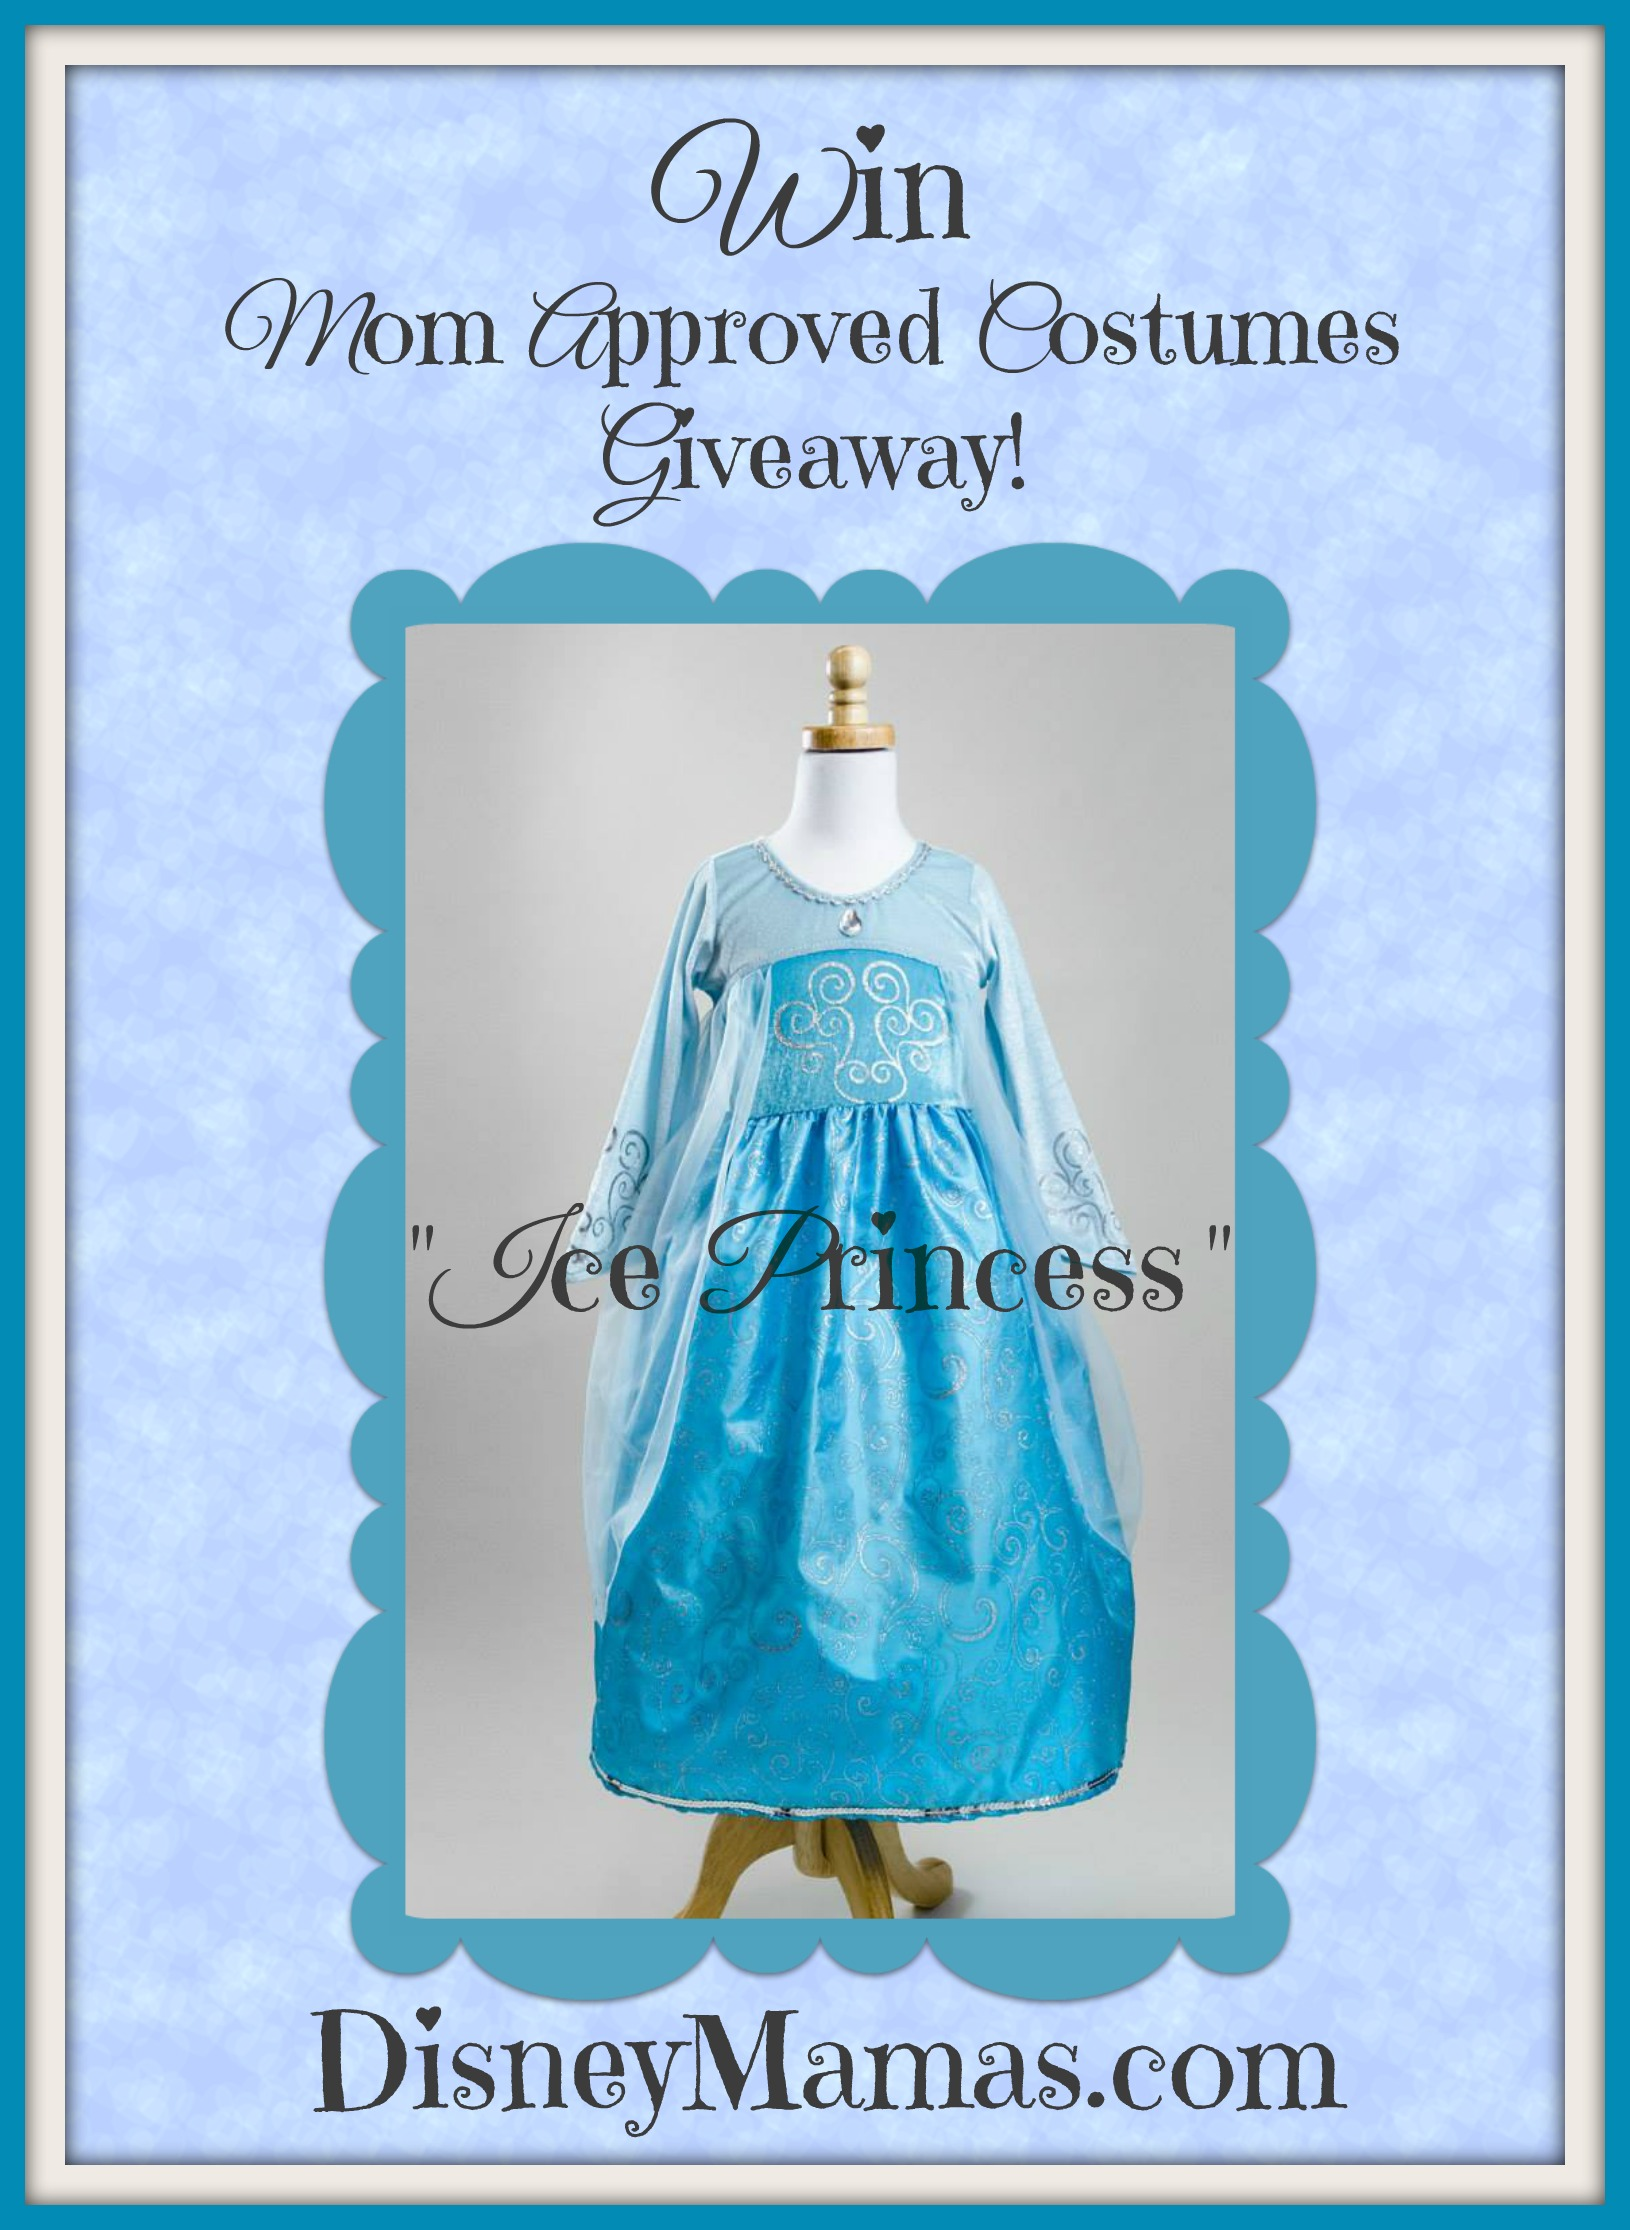 Do you wanna win a costume?  Win a Frozen Inspired Dress from Mom Approved Costumes and DisneyMamas.com